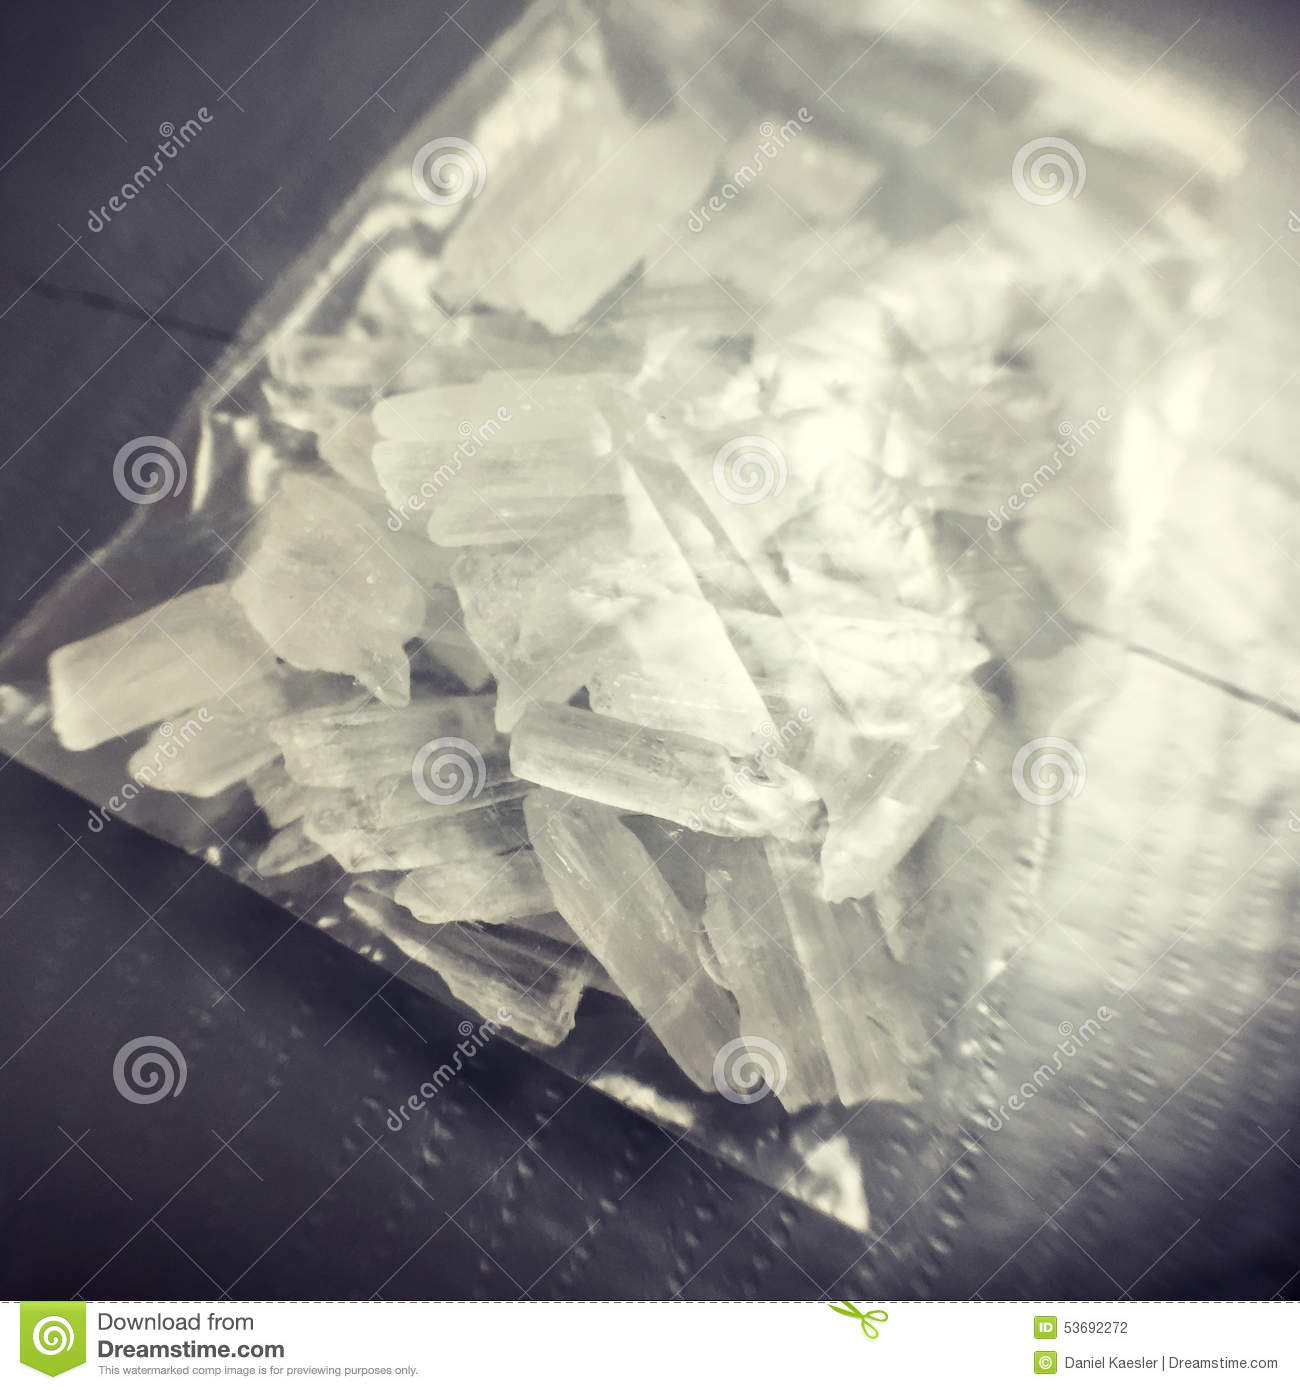 Methamphetamine Also Known As Crystal Meth